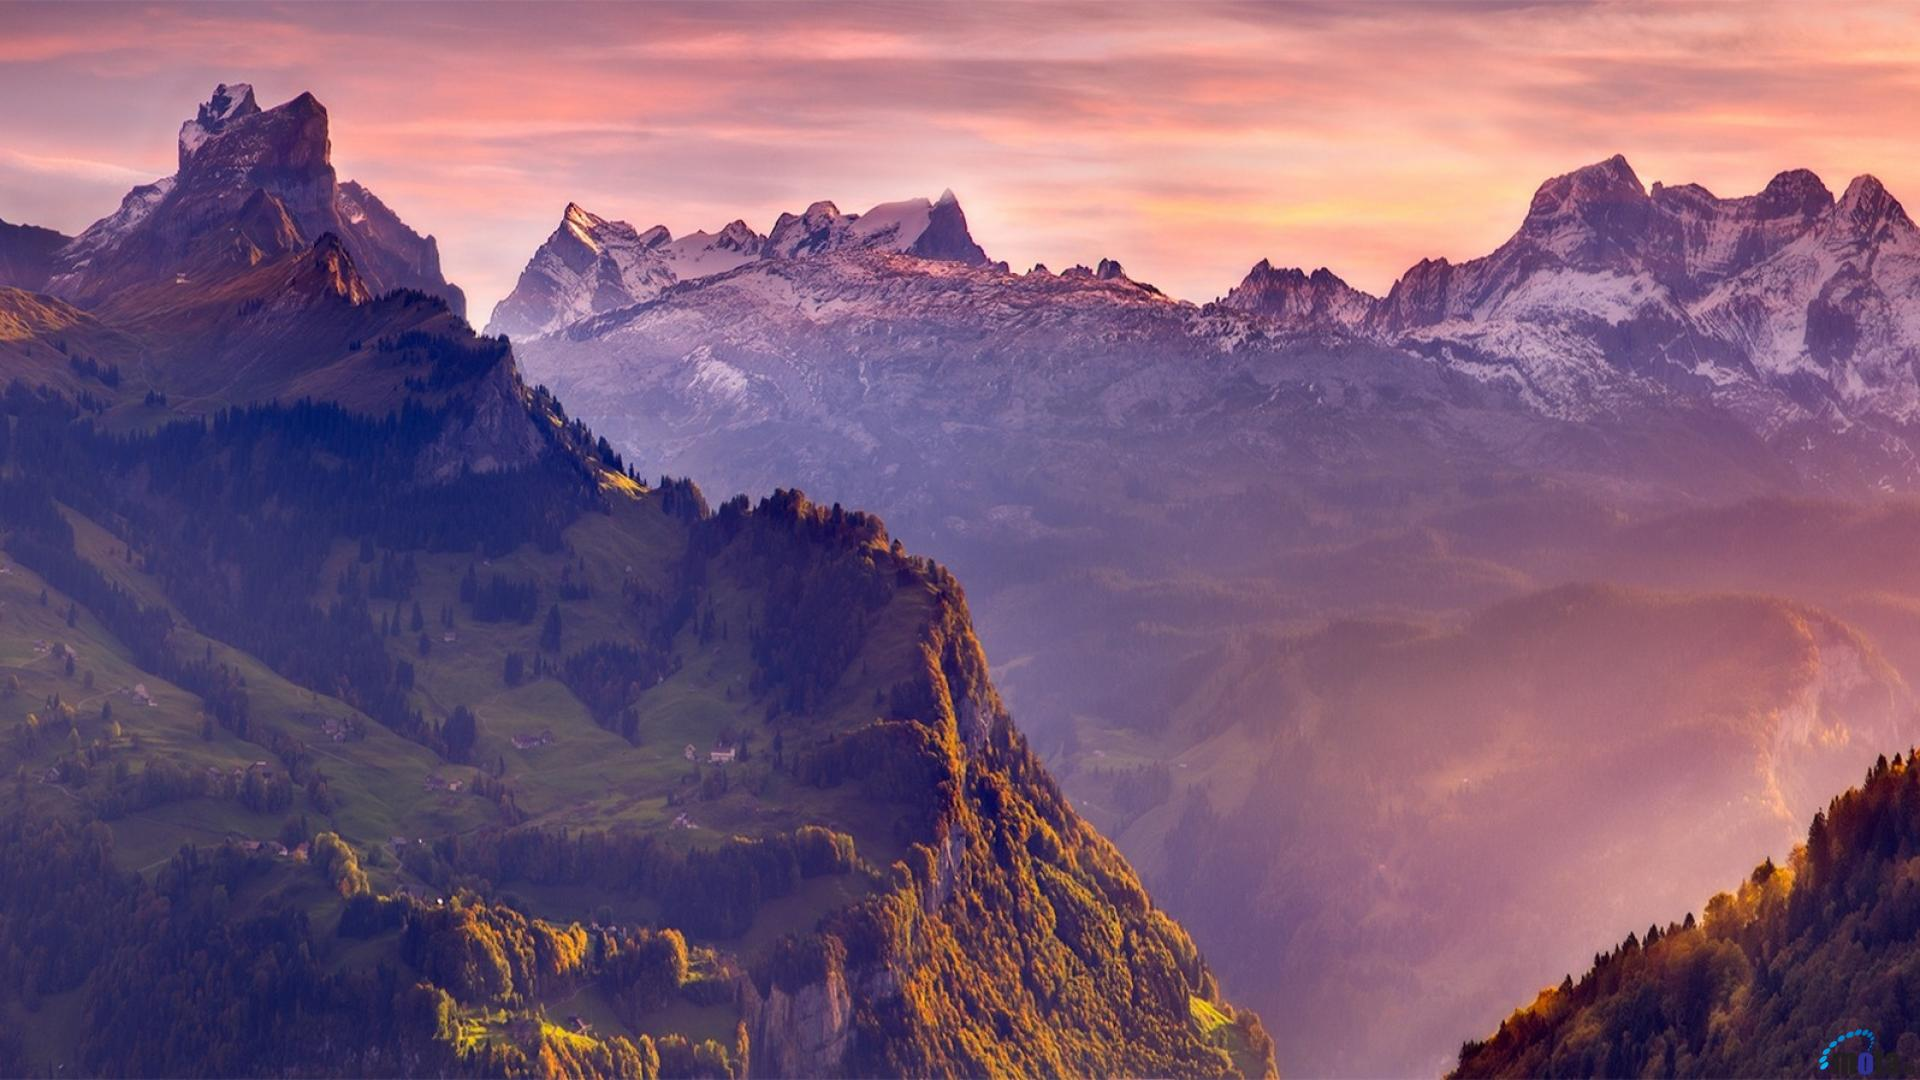 Download Wallpaper Swiss Alps at sunset 1920 x 1080 HDTV 1920x1080